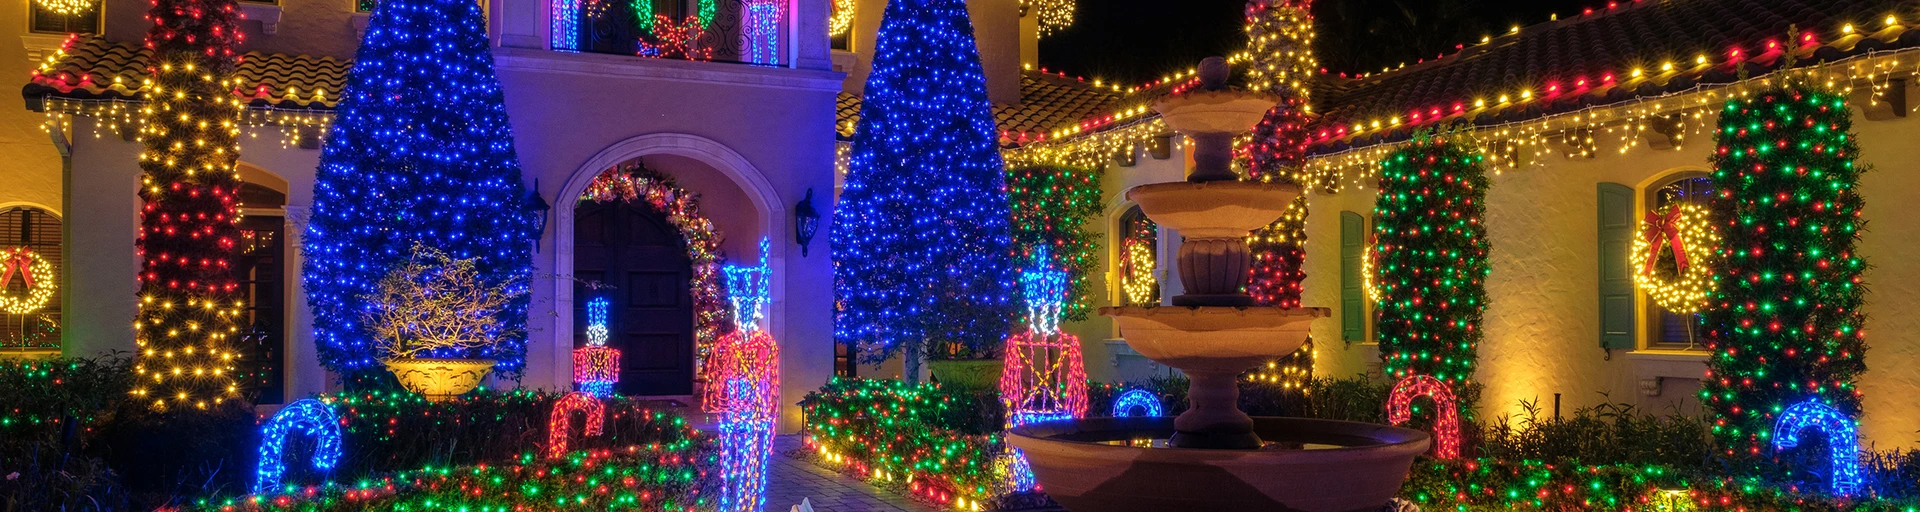 Your Guide to Creating a Magical Space with Outdoor Christmas Decorations